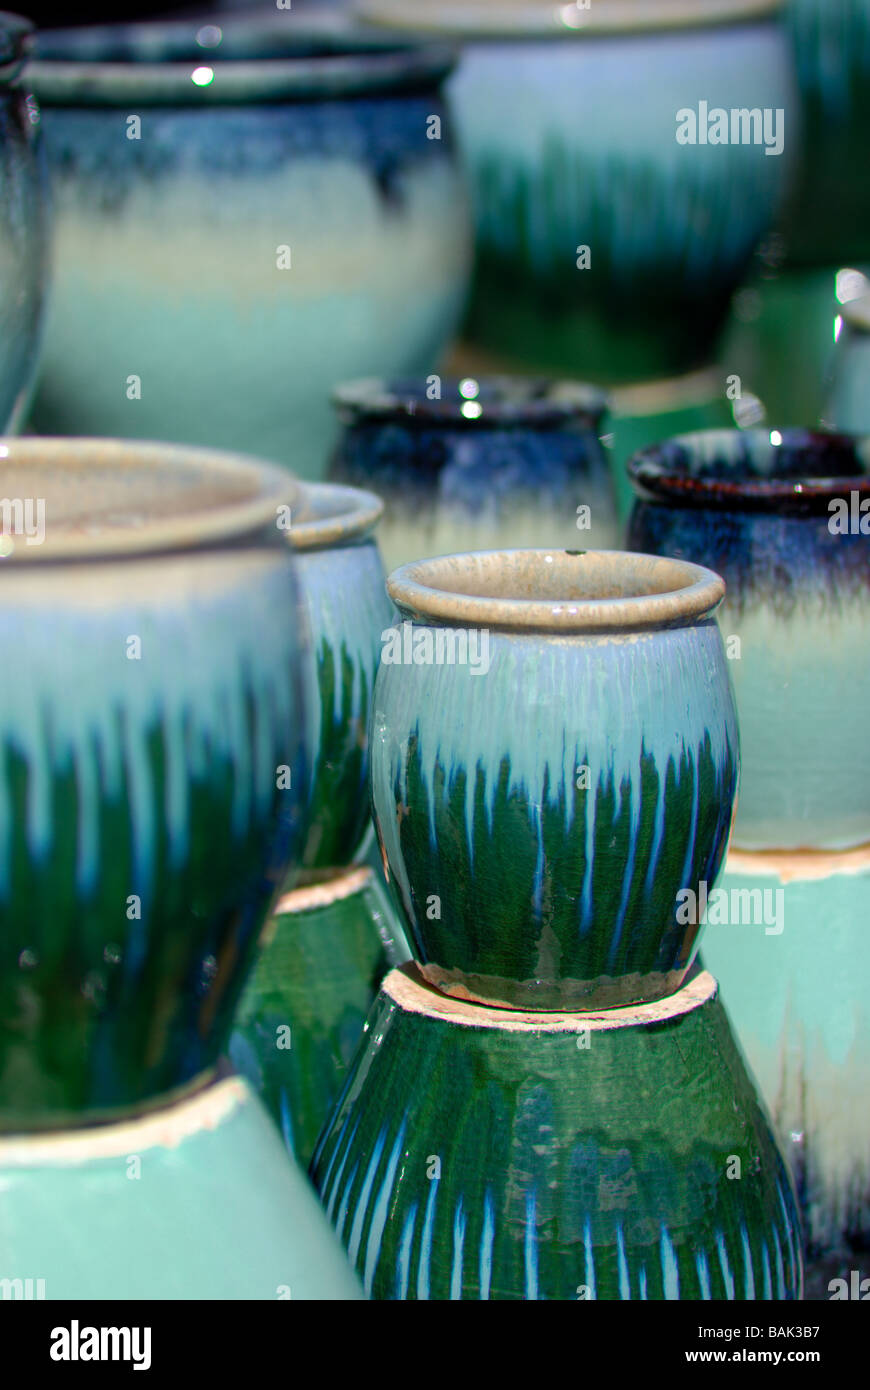 Green and aquamarine colored pottery at a garden center. - Stock Image